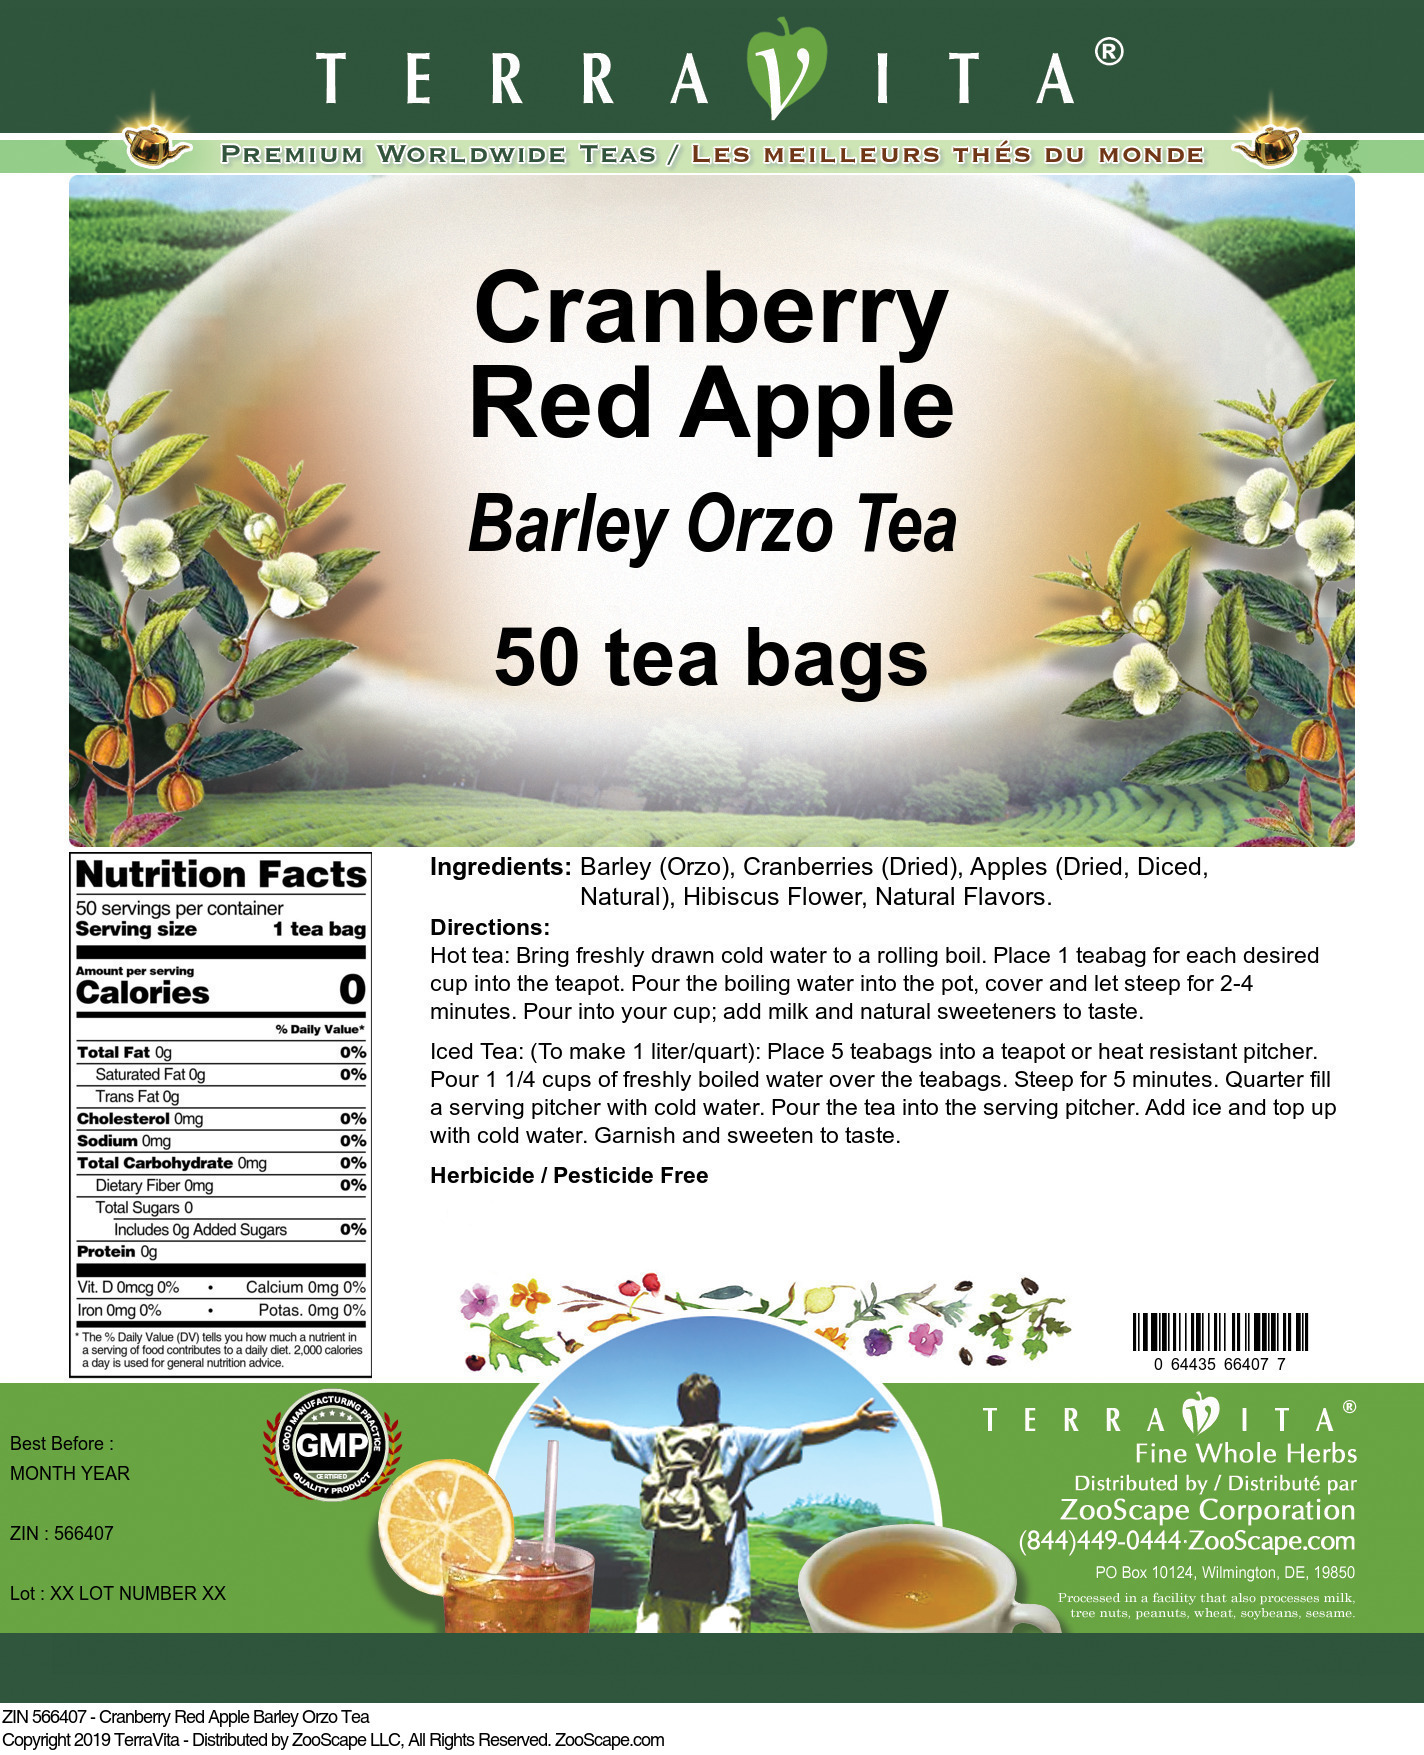 Cranberry Red Apple Barley Orzo Tea